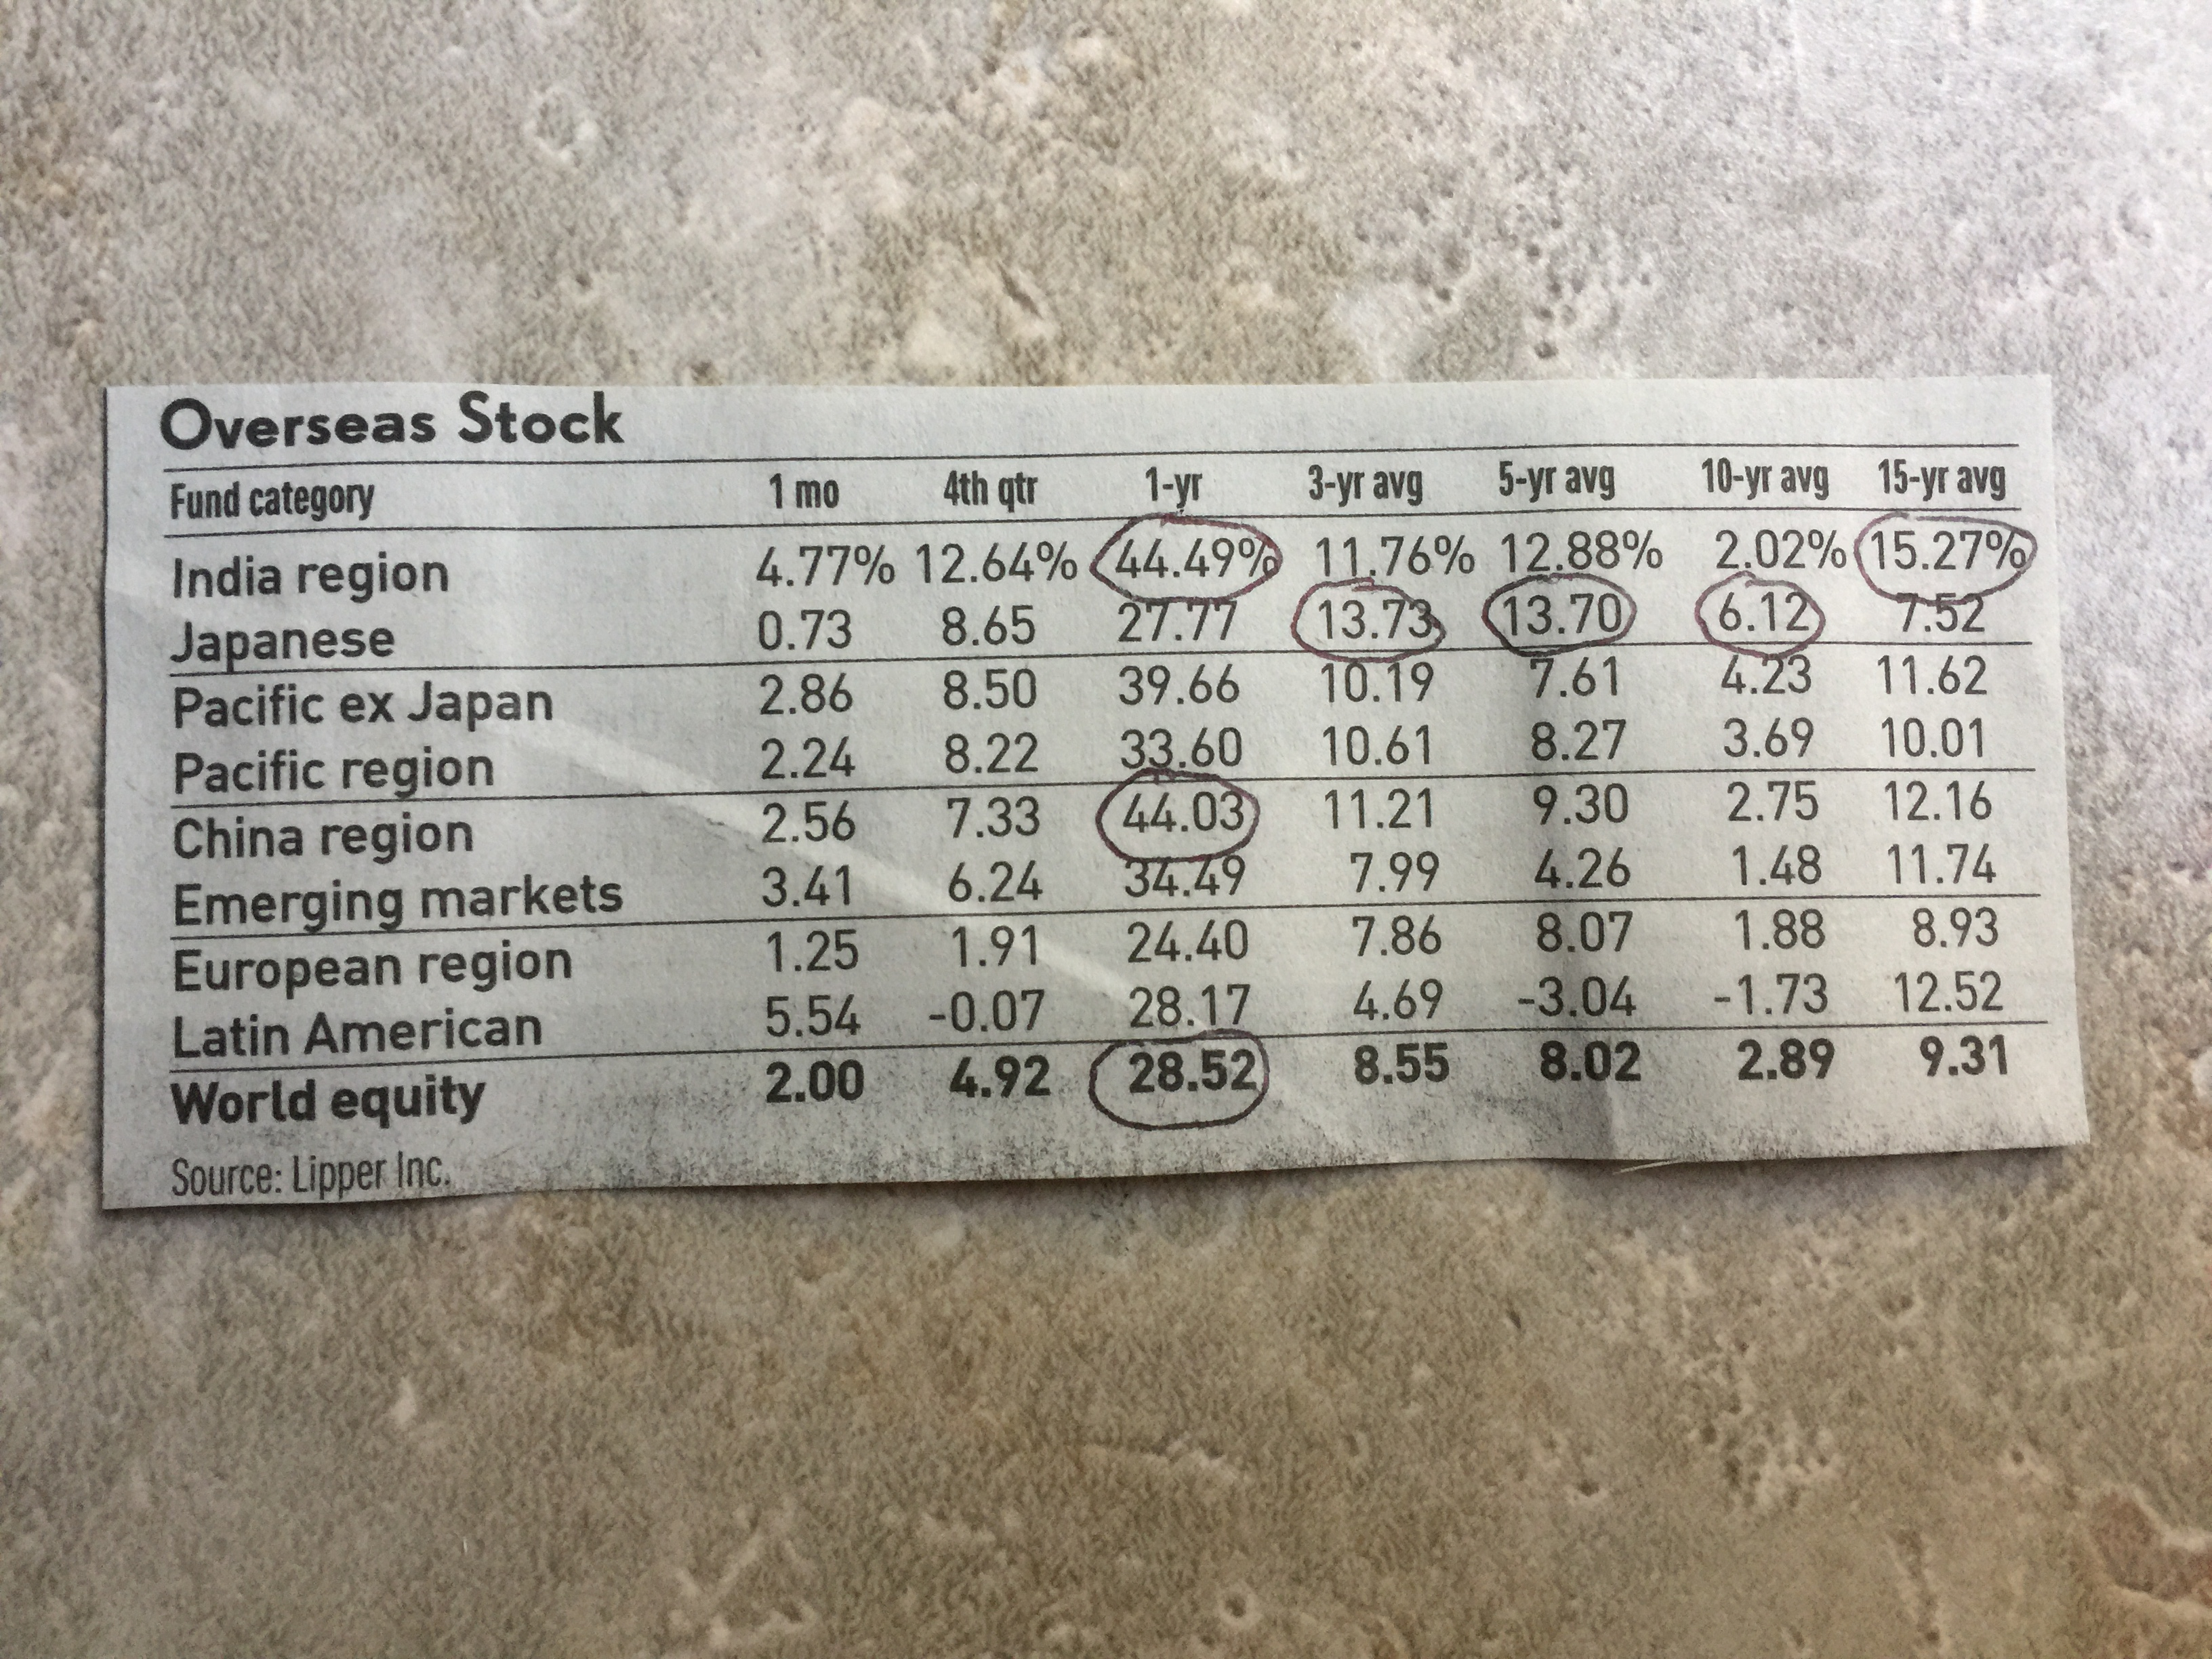 Overseas Stock and World Equity